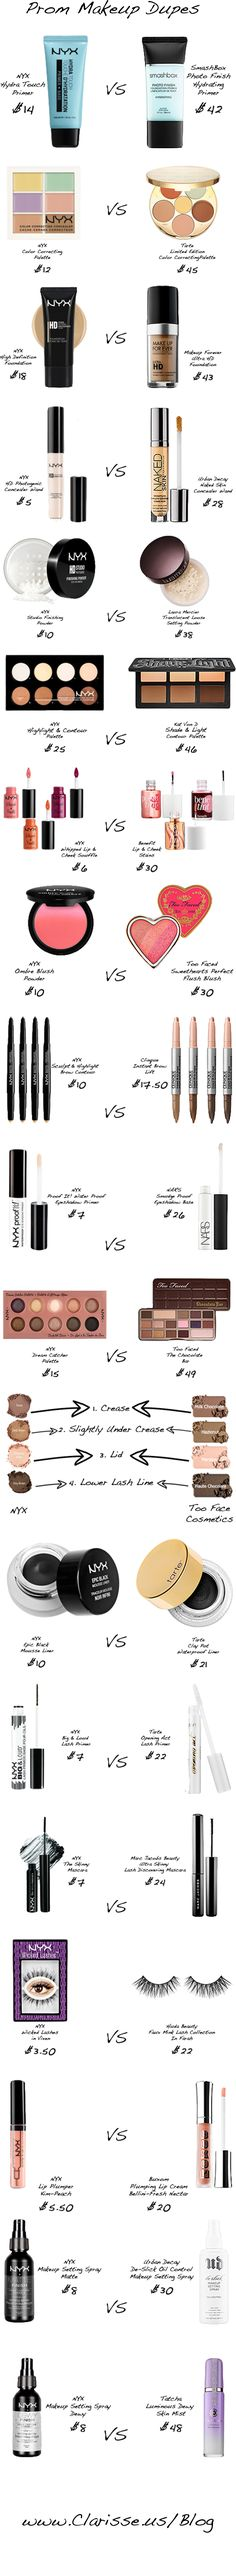 Prom Makeup Dupes: Splurge vs Steal